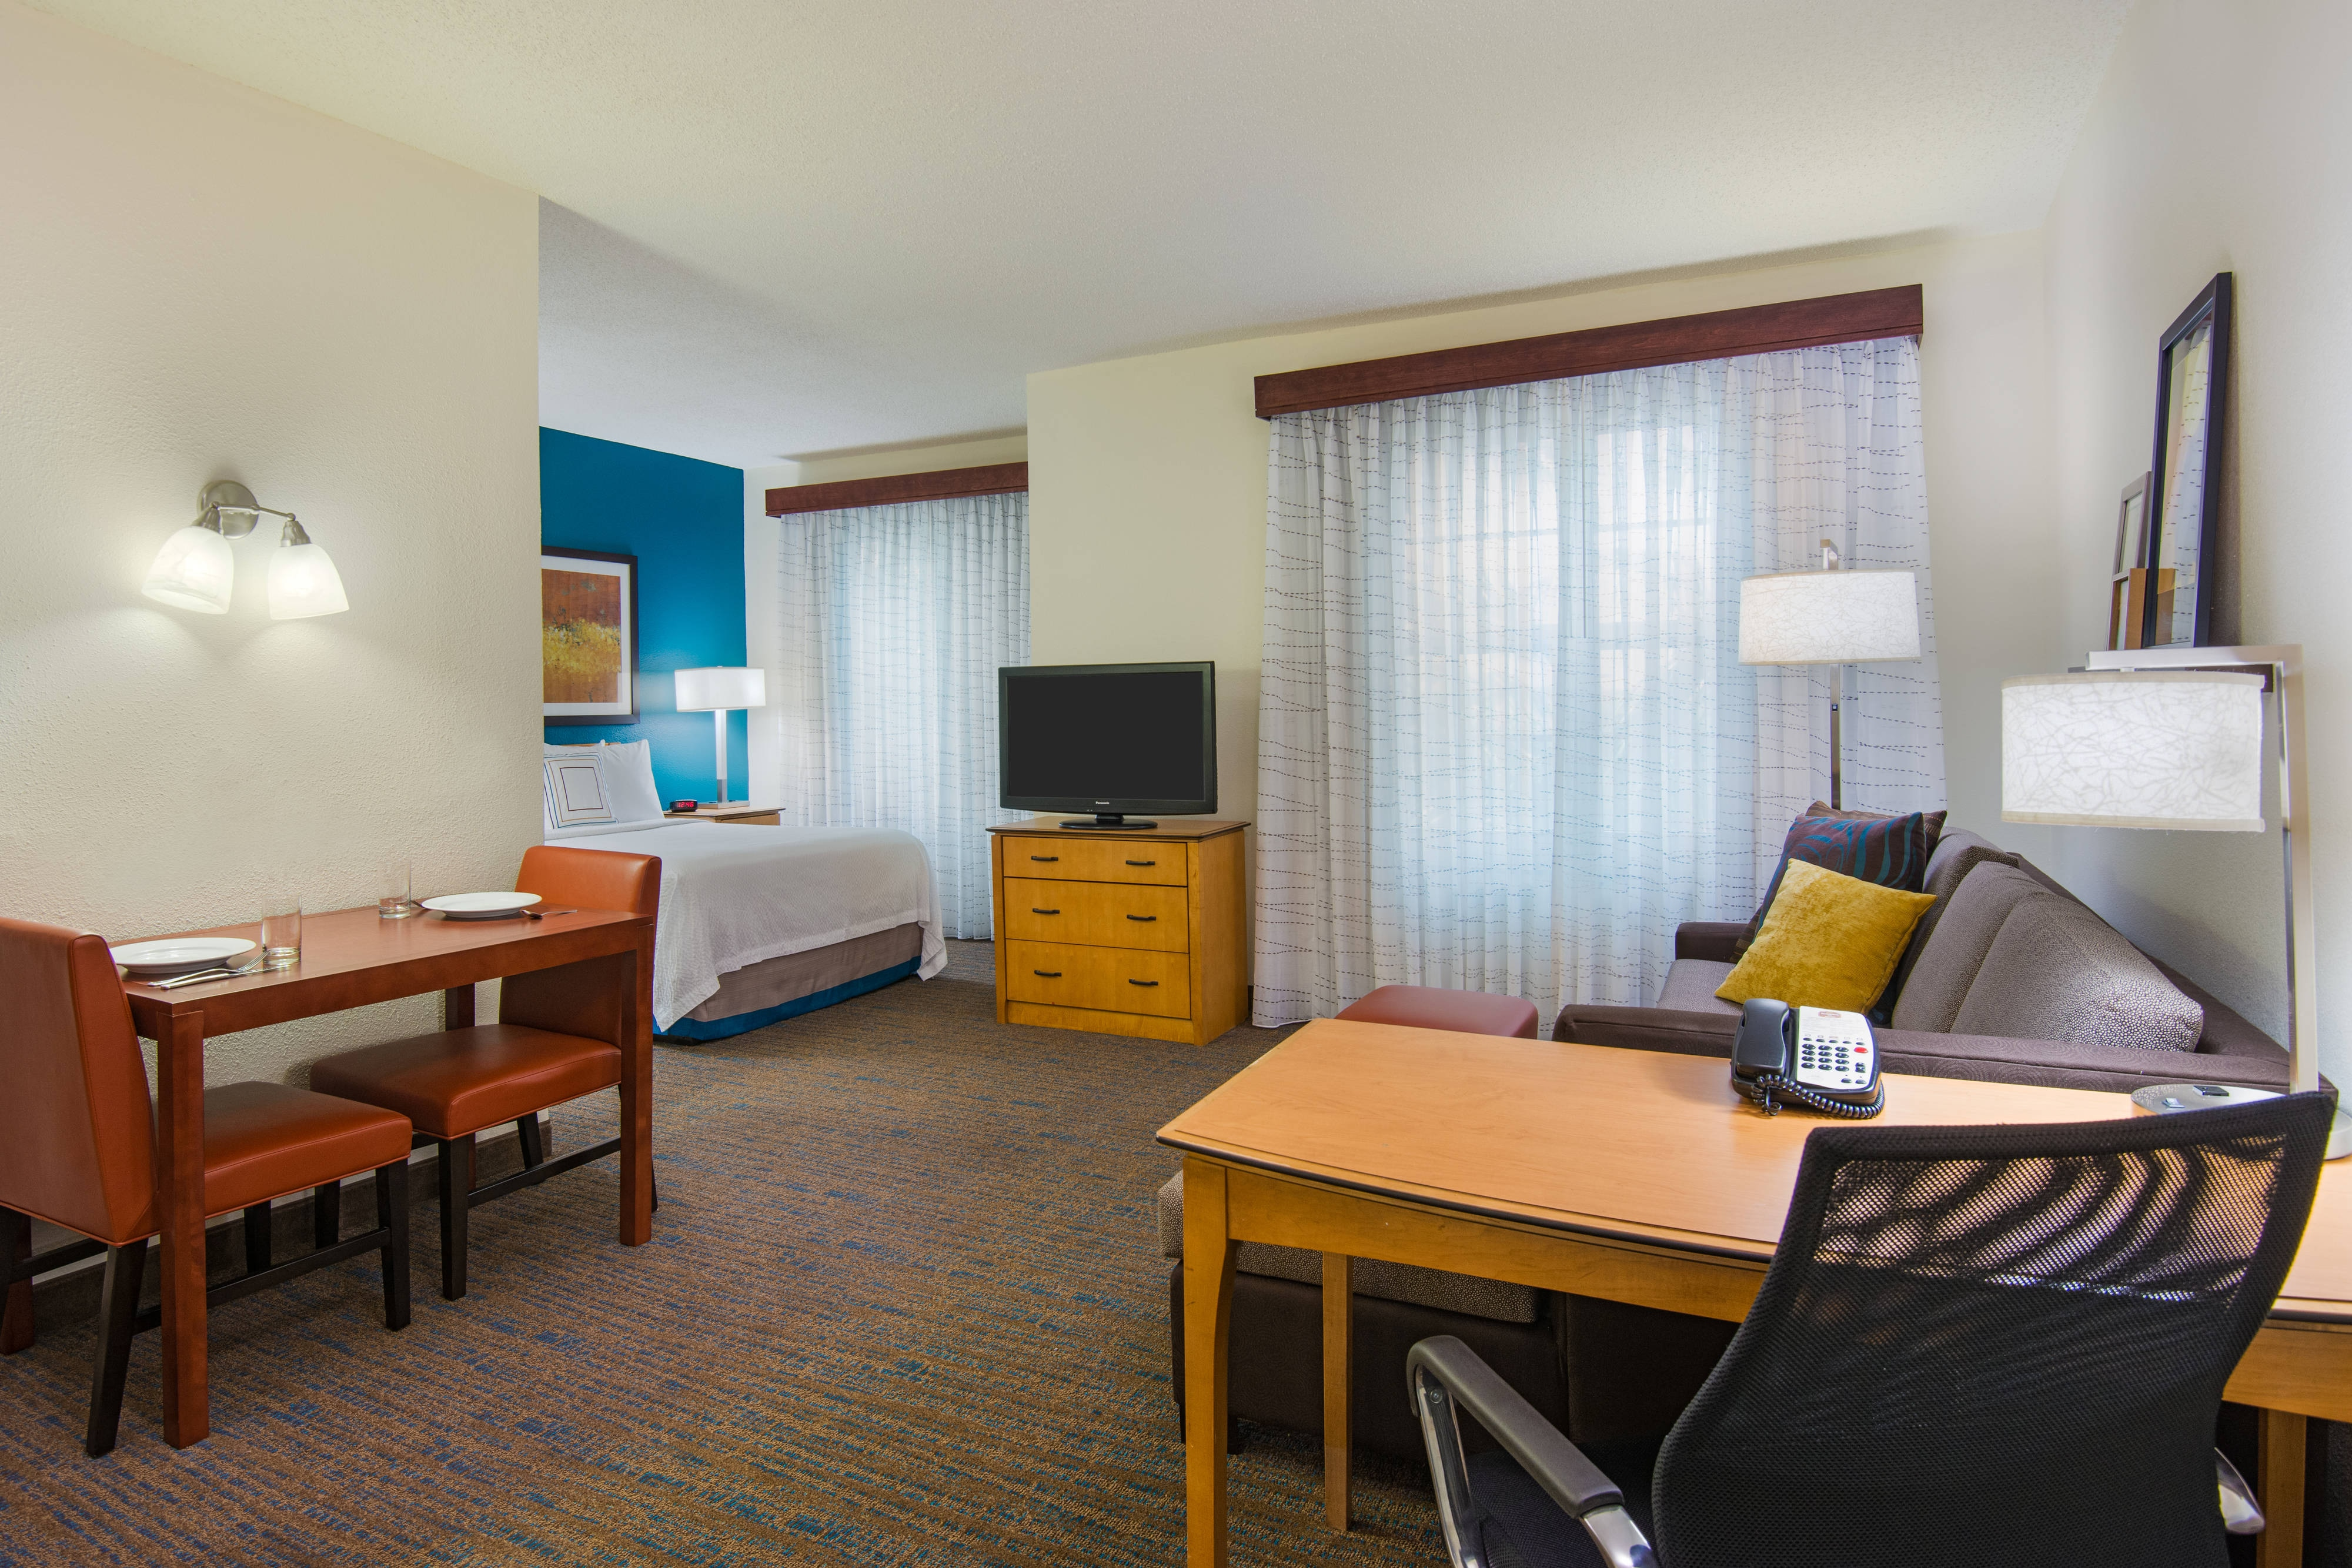 Extended stay hotels in ft lauderdale fort lauderdale suites for 2 bedroom hotels in fort lauderdale fl